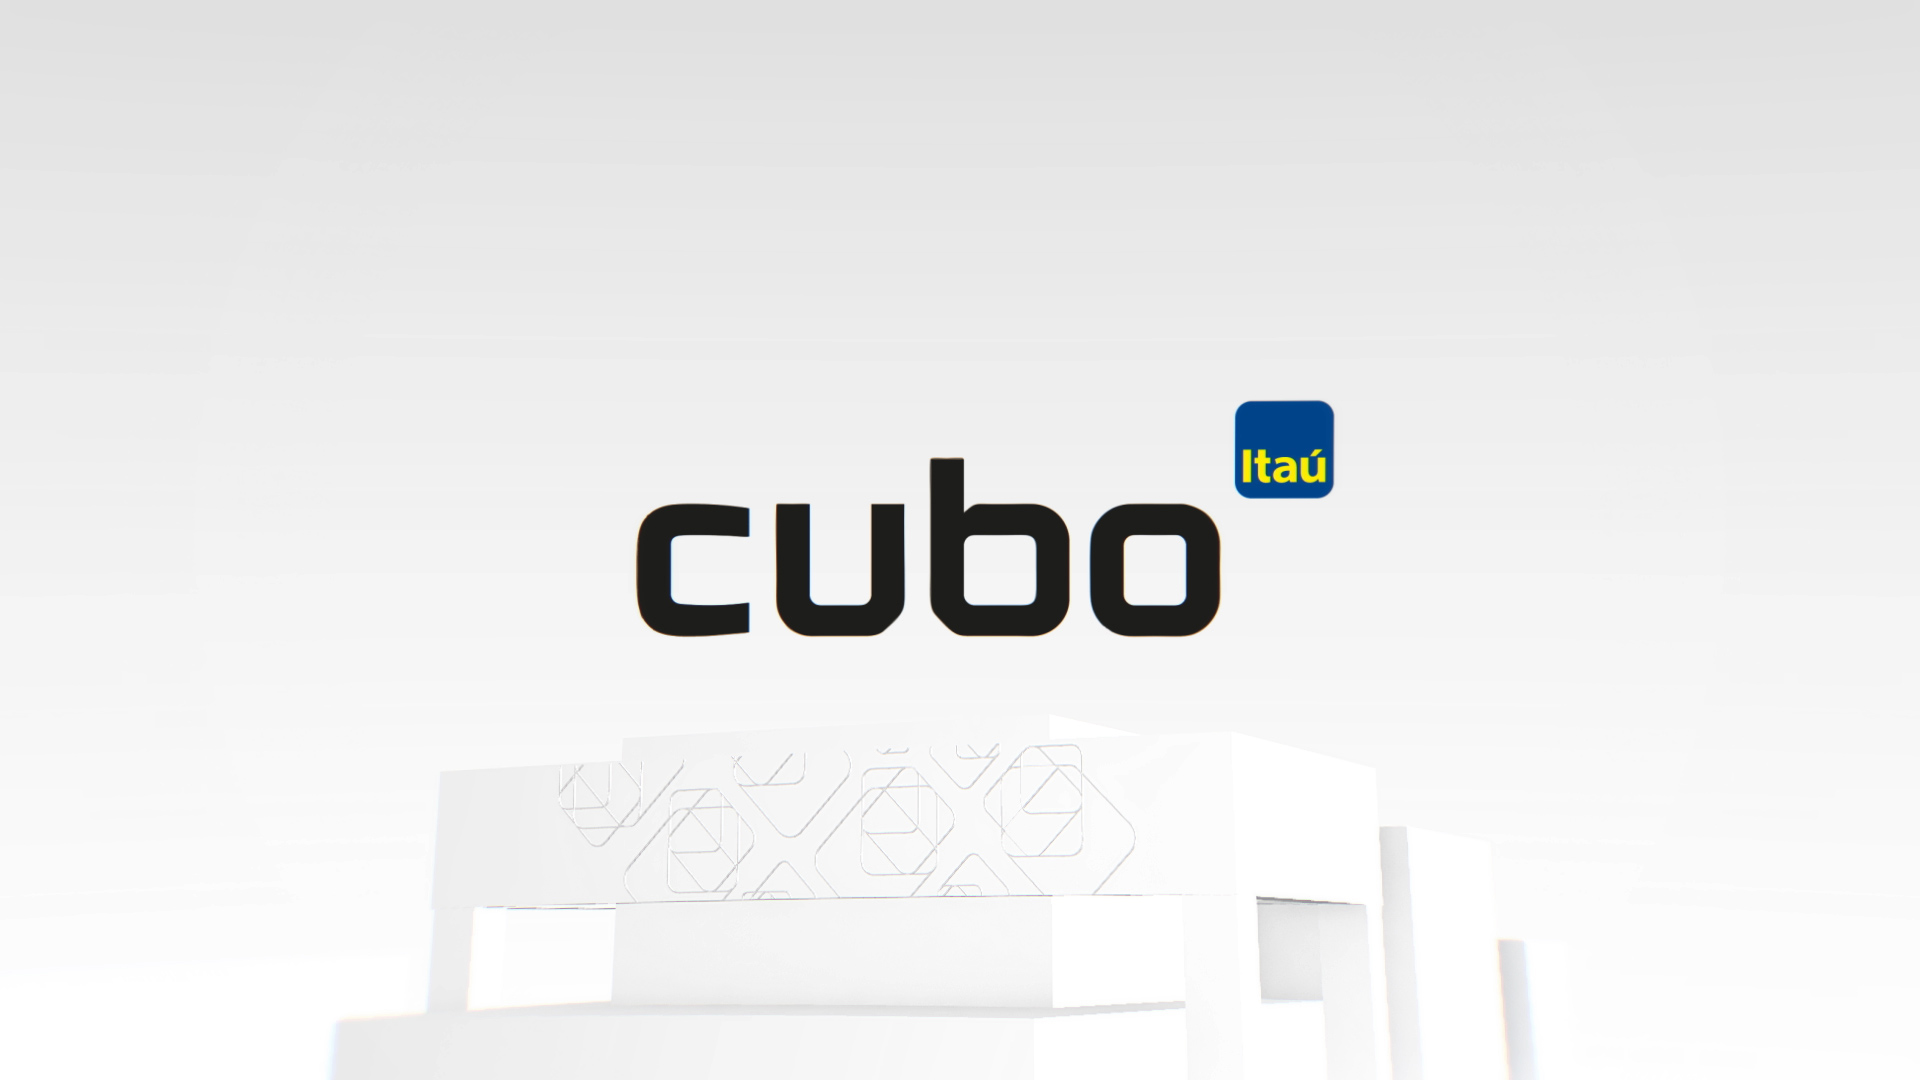 CUBO ITAÚ reopening